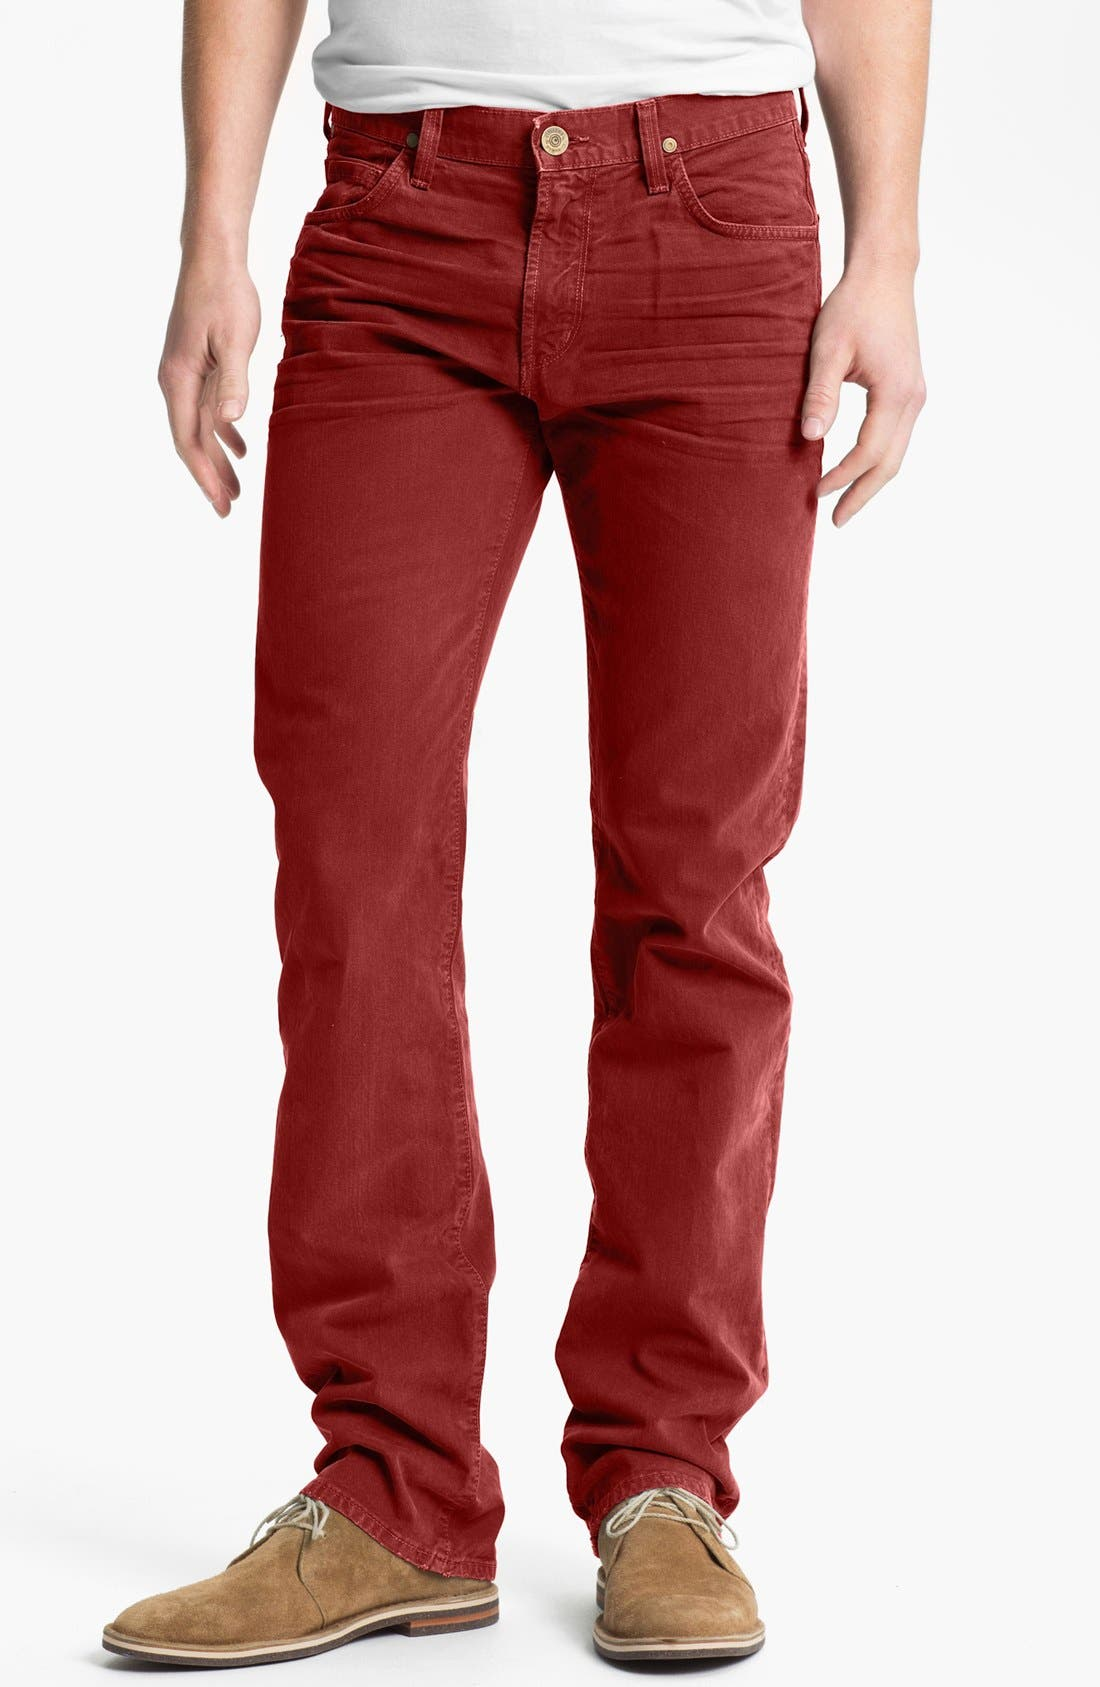 Alternate Image 1 Selected - Citizens of Humanity 'Sid' Straight Leg Jeans (Online Only)